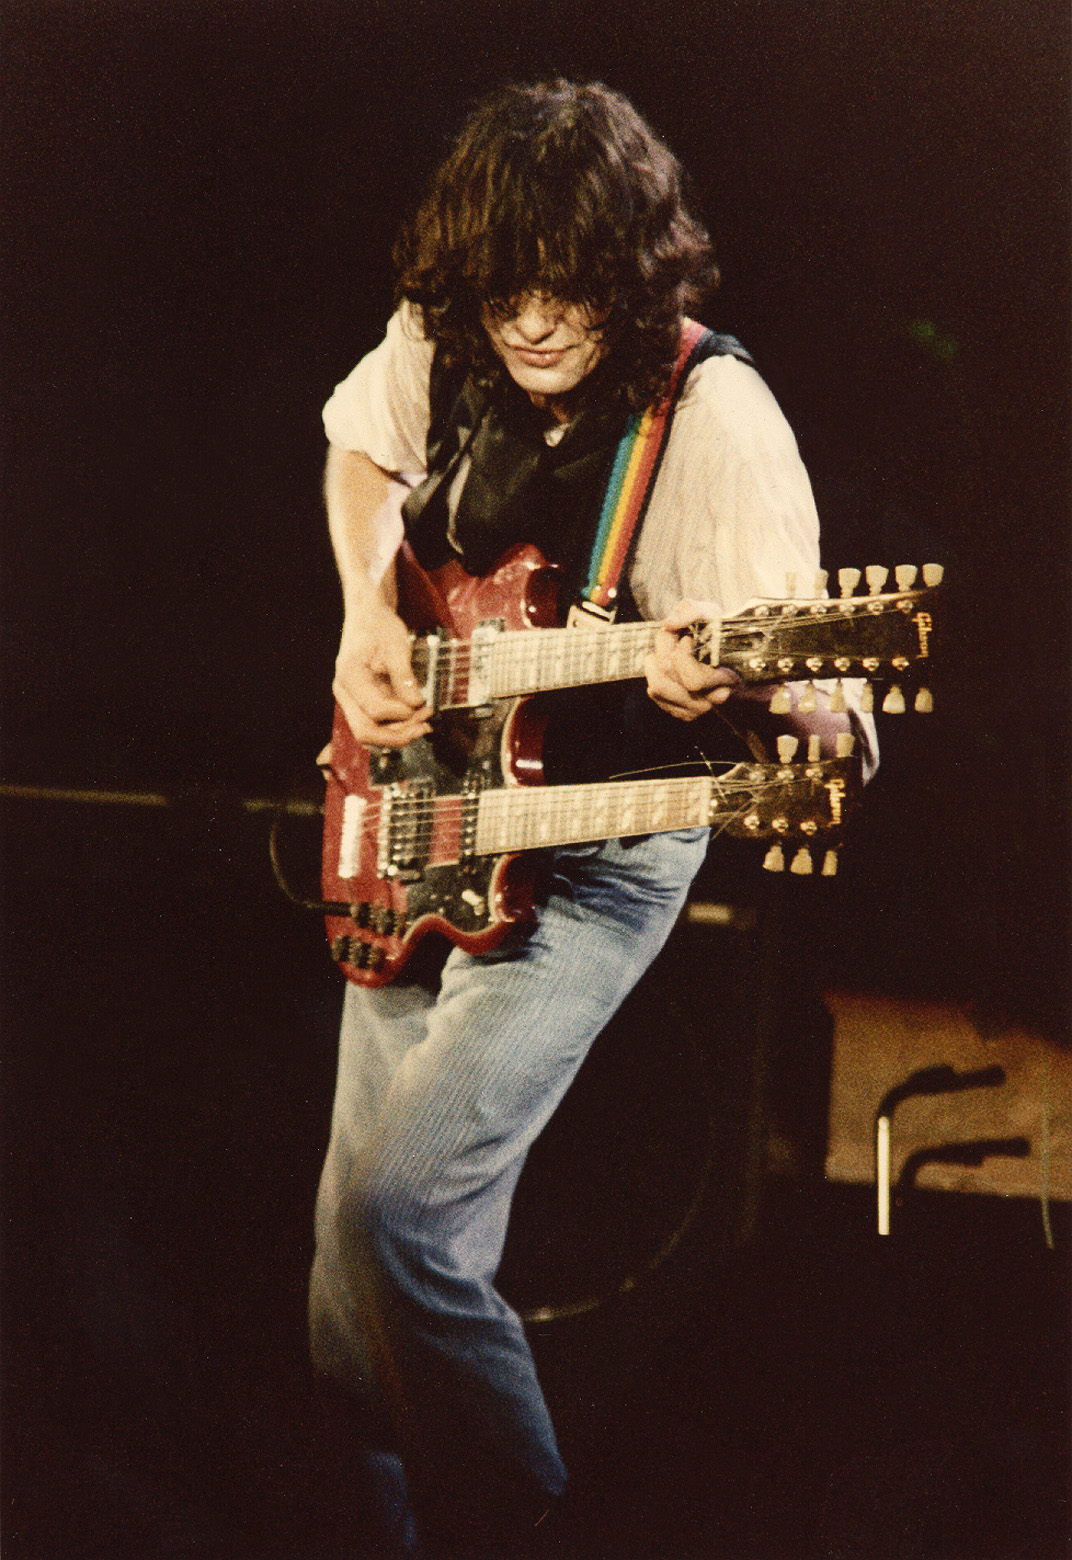 jimmy page on stage image.jpg